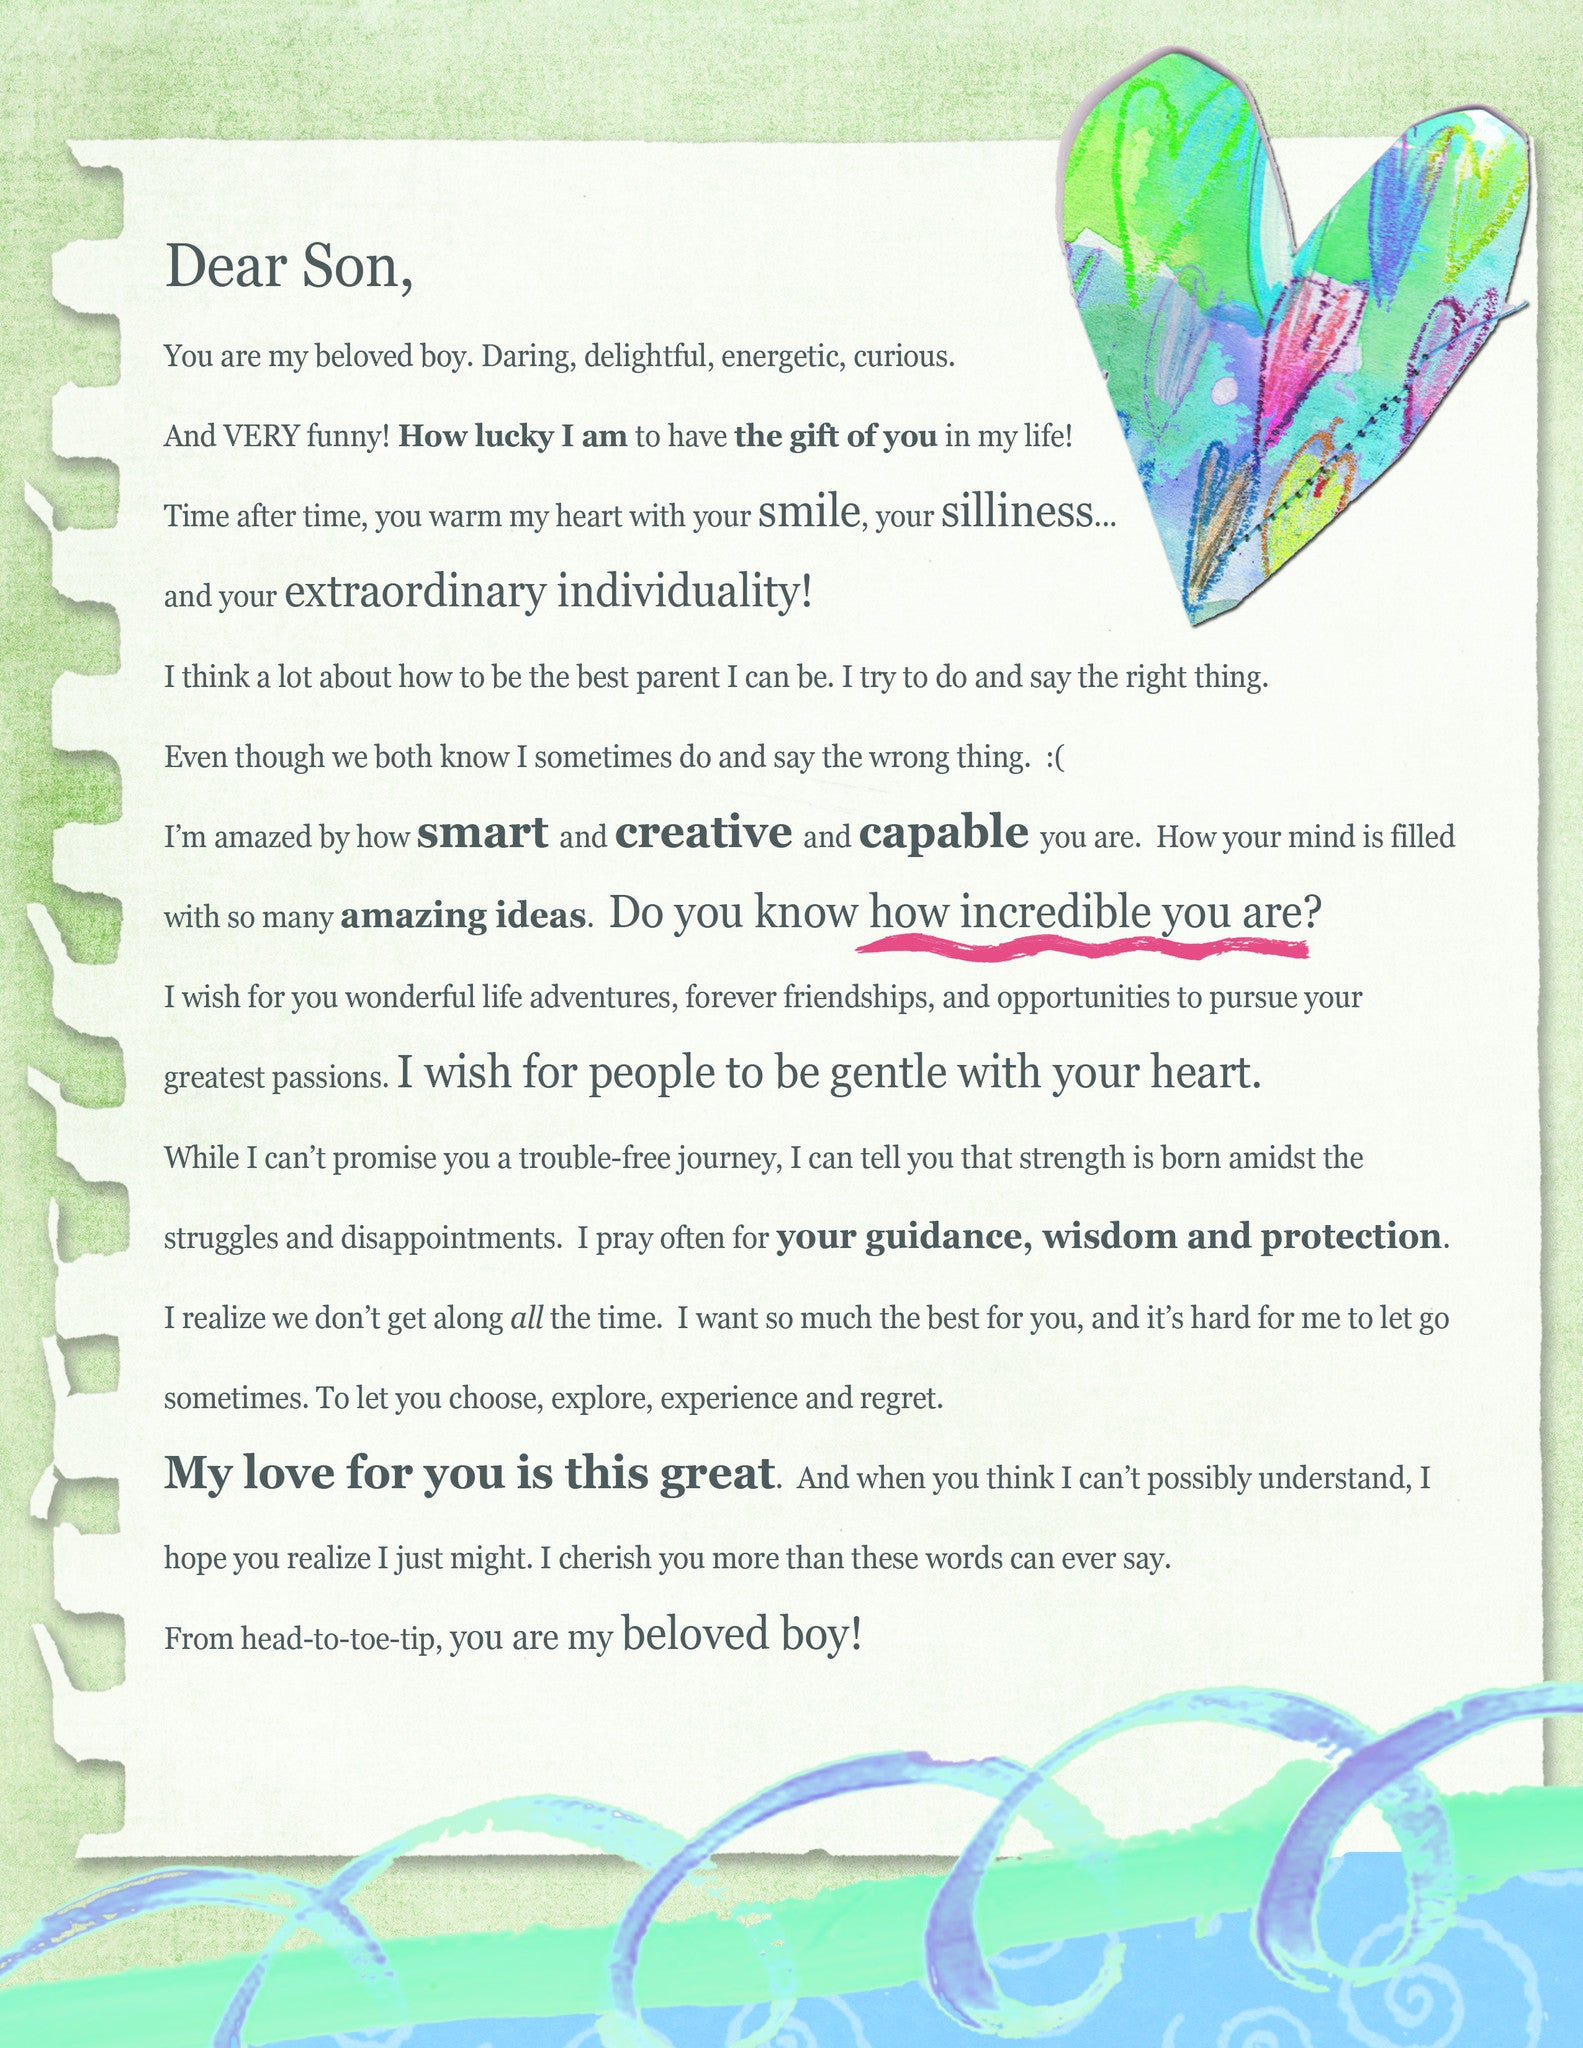 Dear Son Letter (Digital Download)